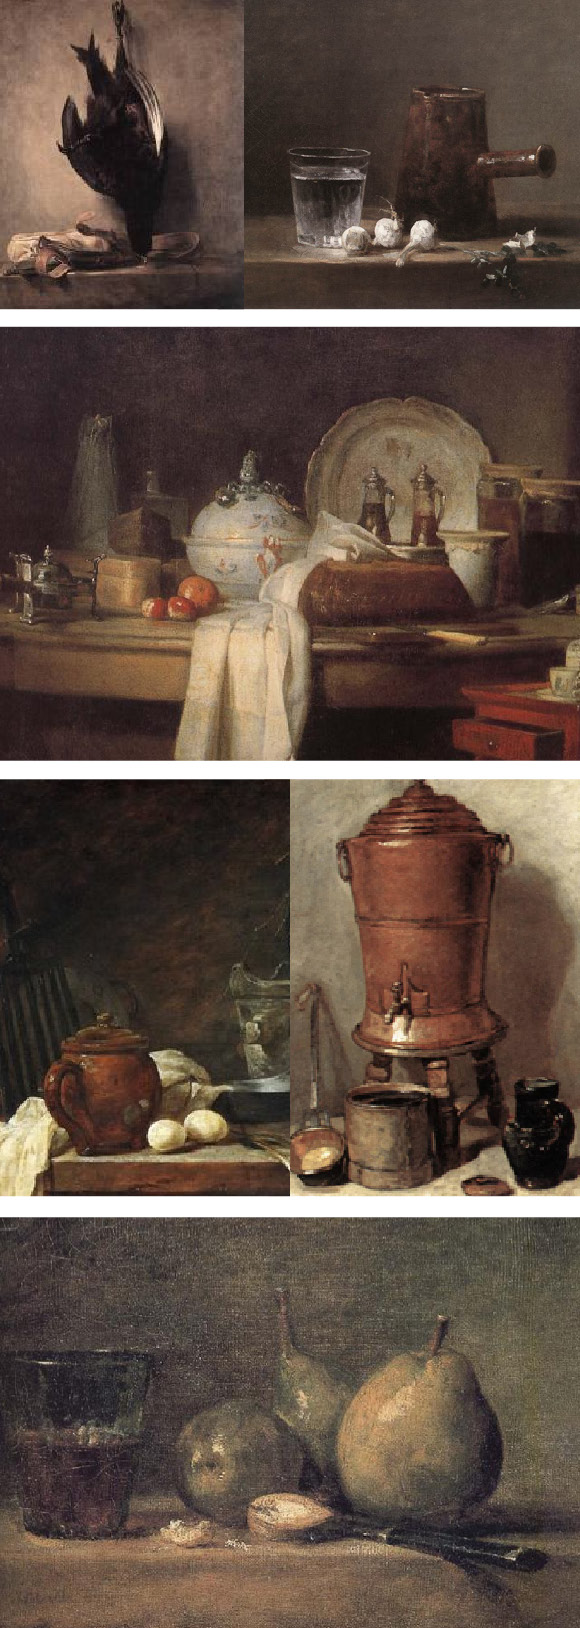 18th century french food paintings margaretandjoy for 18th century cuisine